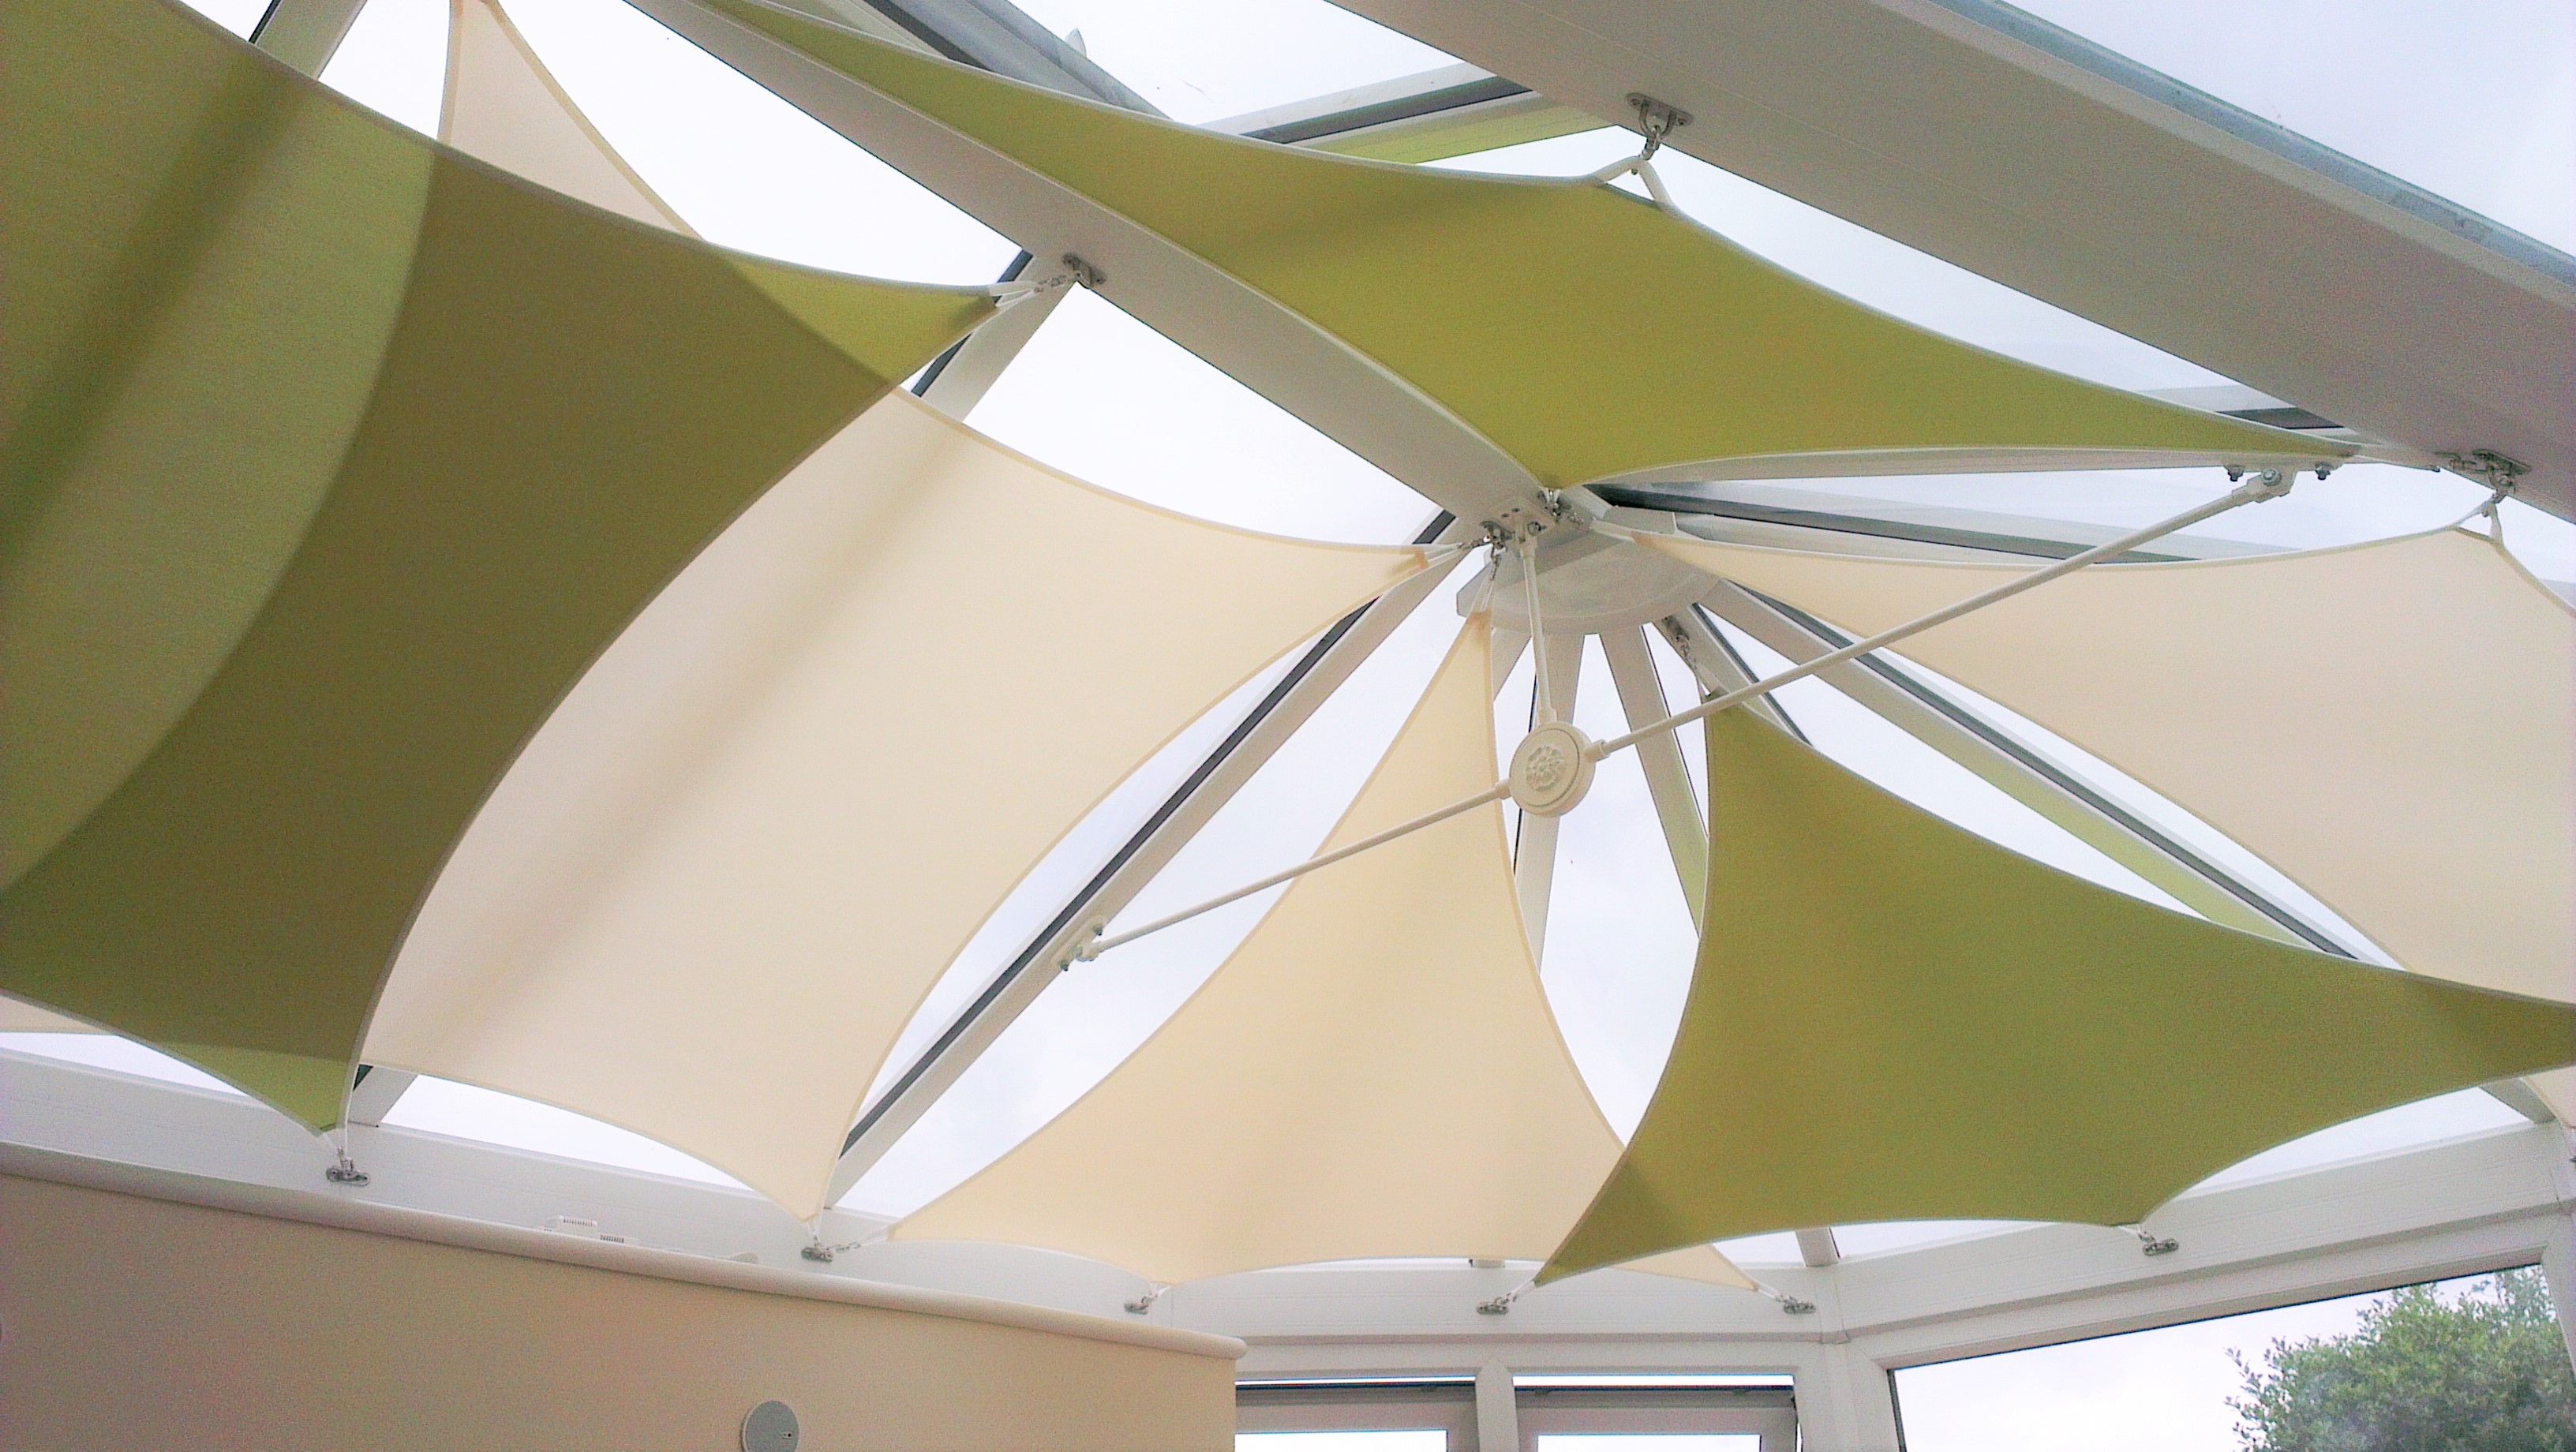 Pin By Inshade Conservatory Sail Blin On Conservatory Designs Conservatory Interiors Conservatory Roof Conservatory Design